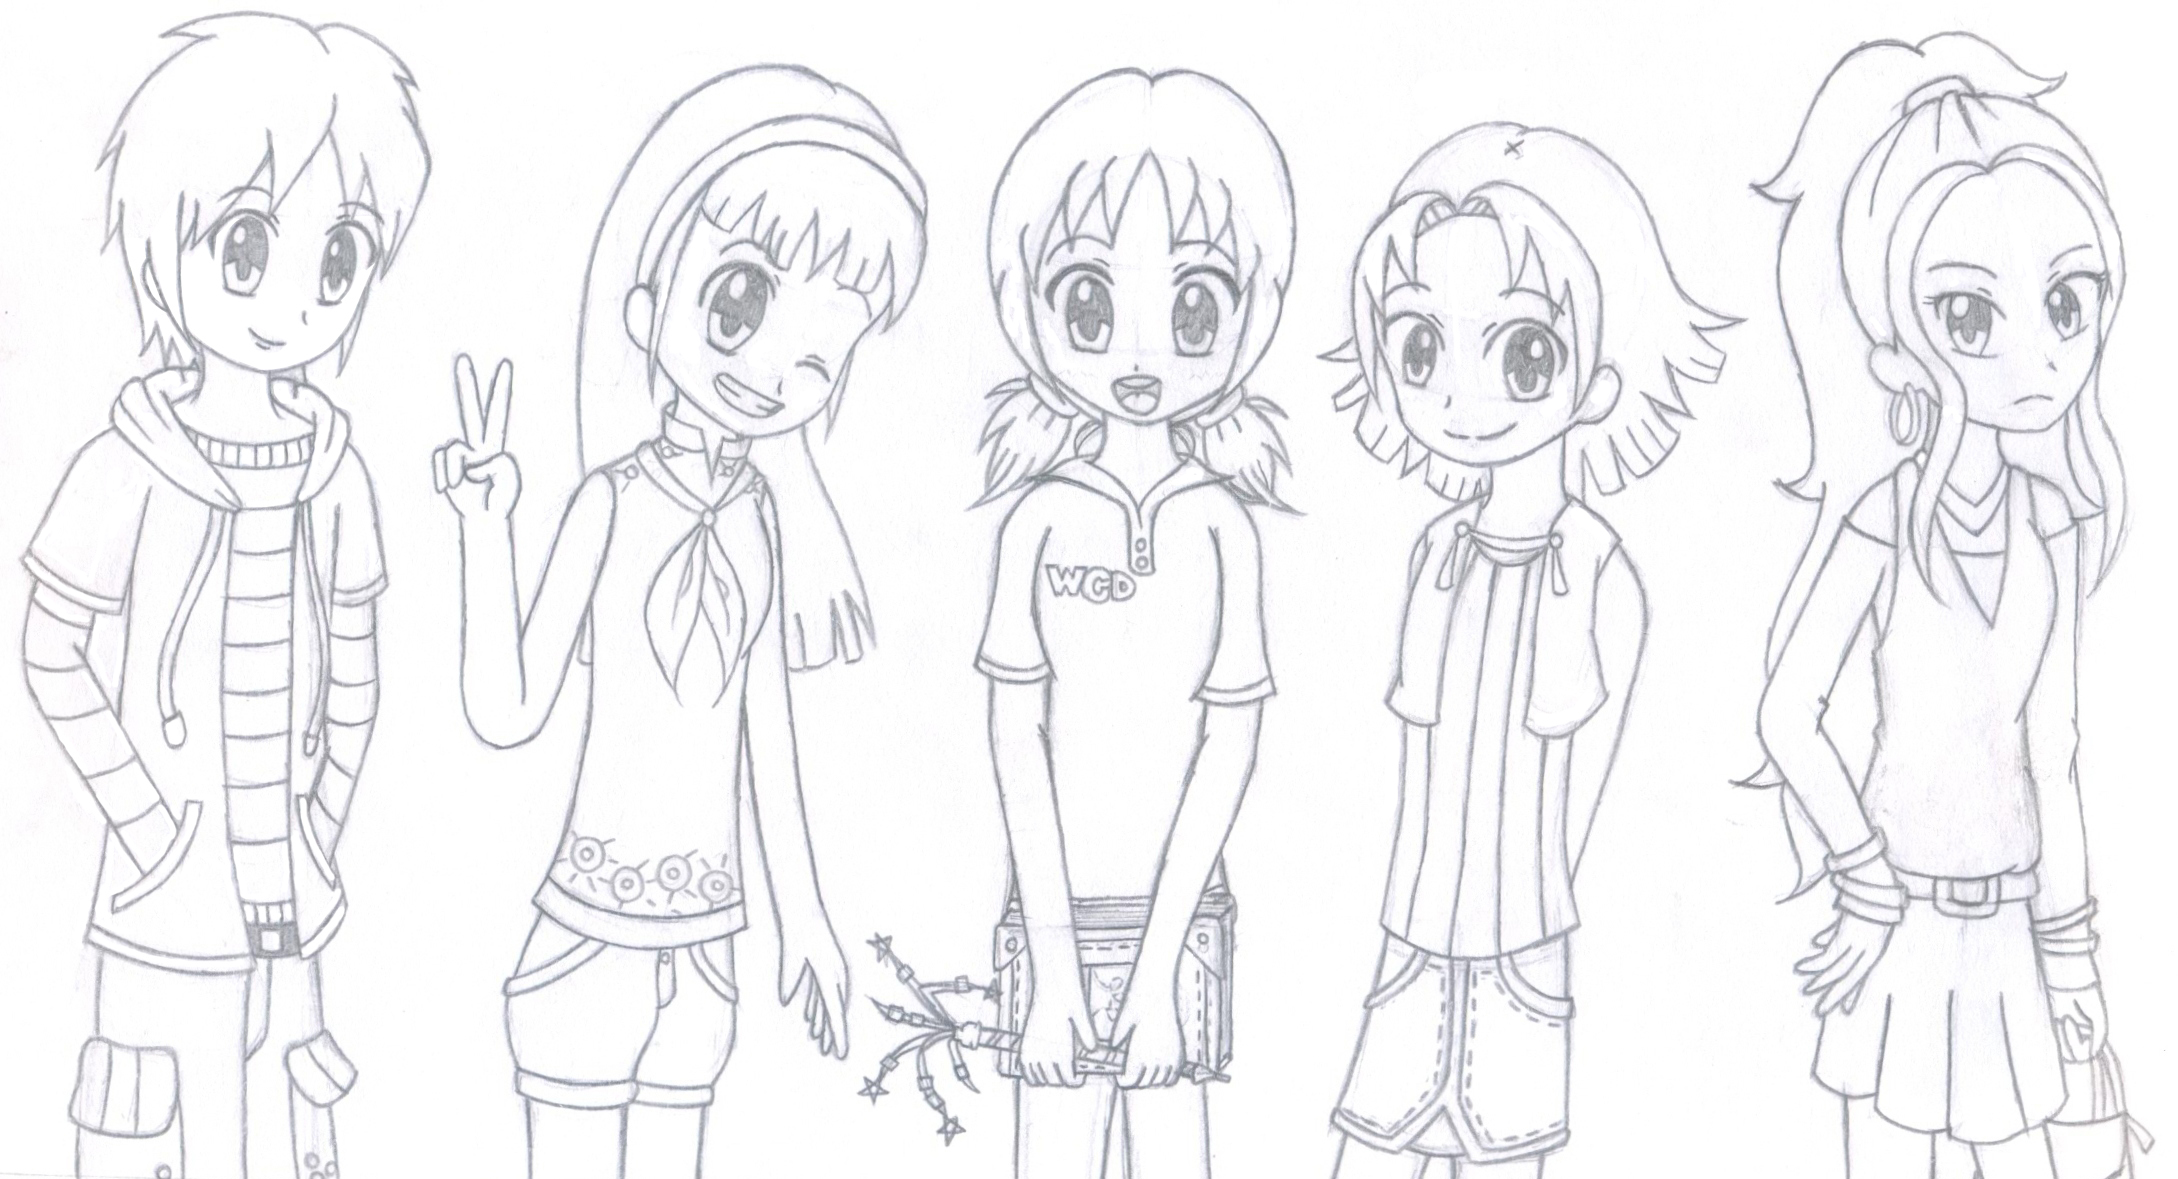 Dork Diaries Anime Style By SonicFreak25 On DeviantArt